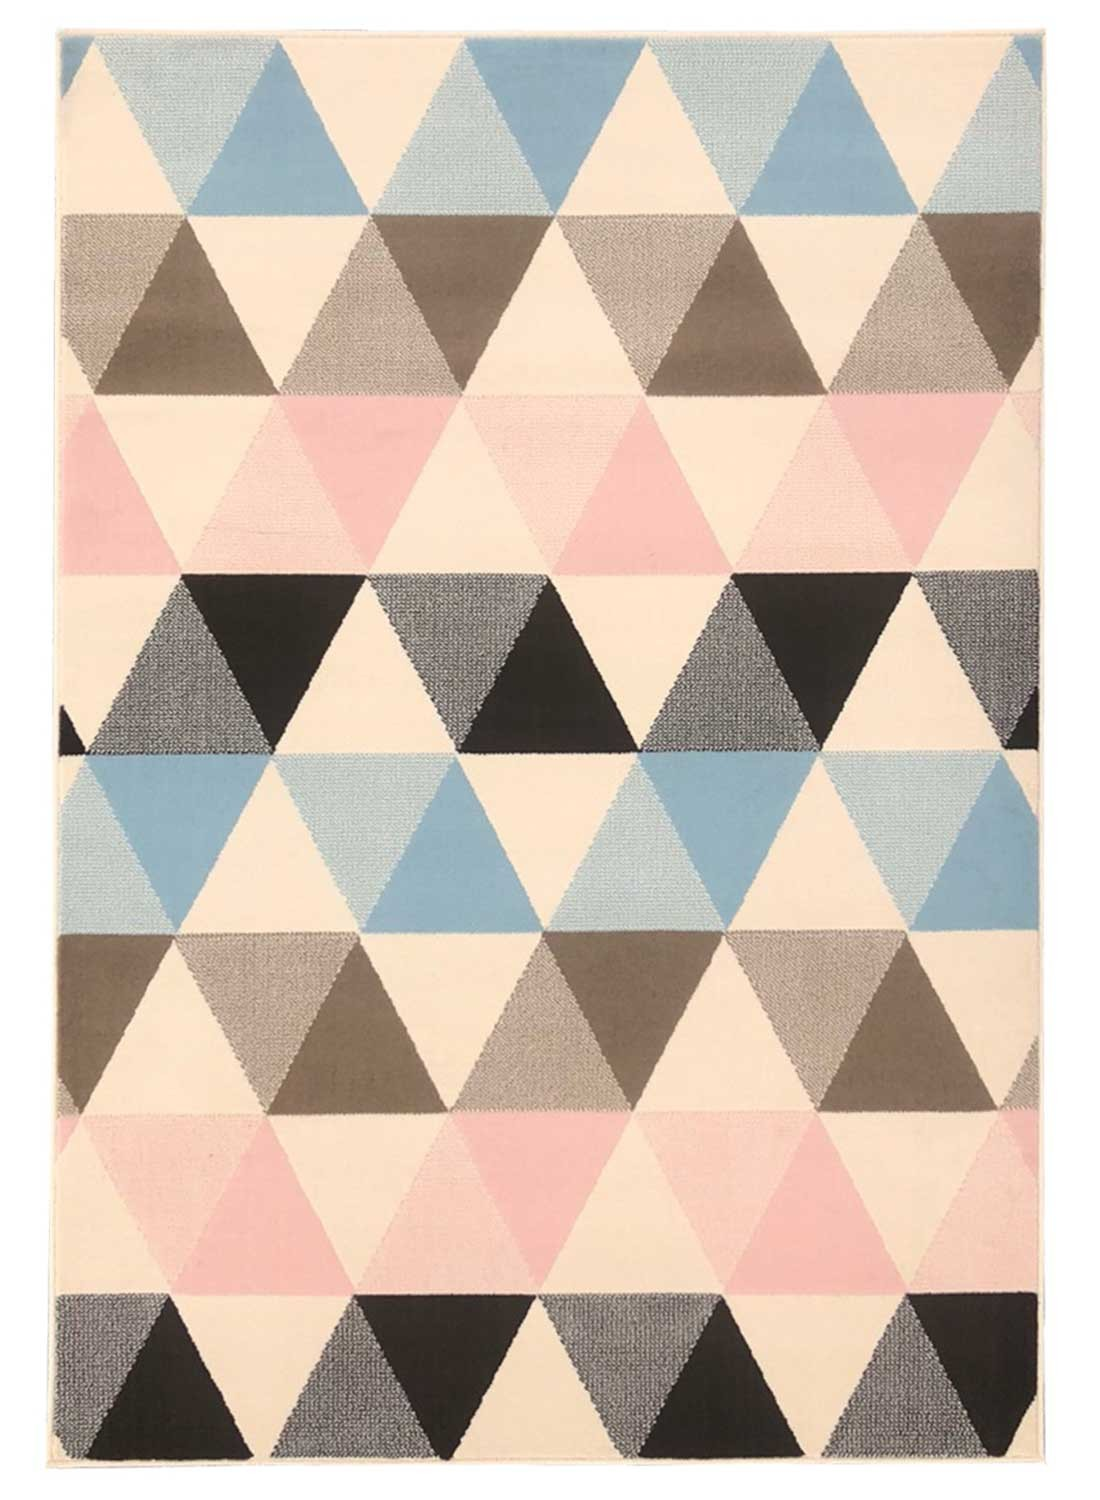 Tapis tendance Scandinave BC PASTELIANGLE multicouleur pastel